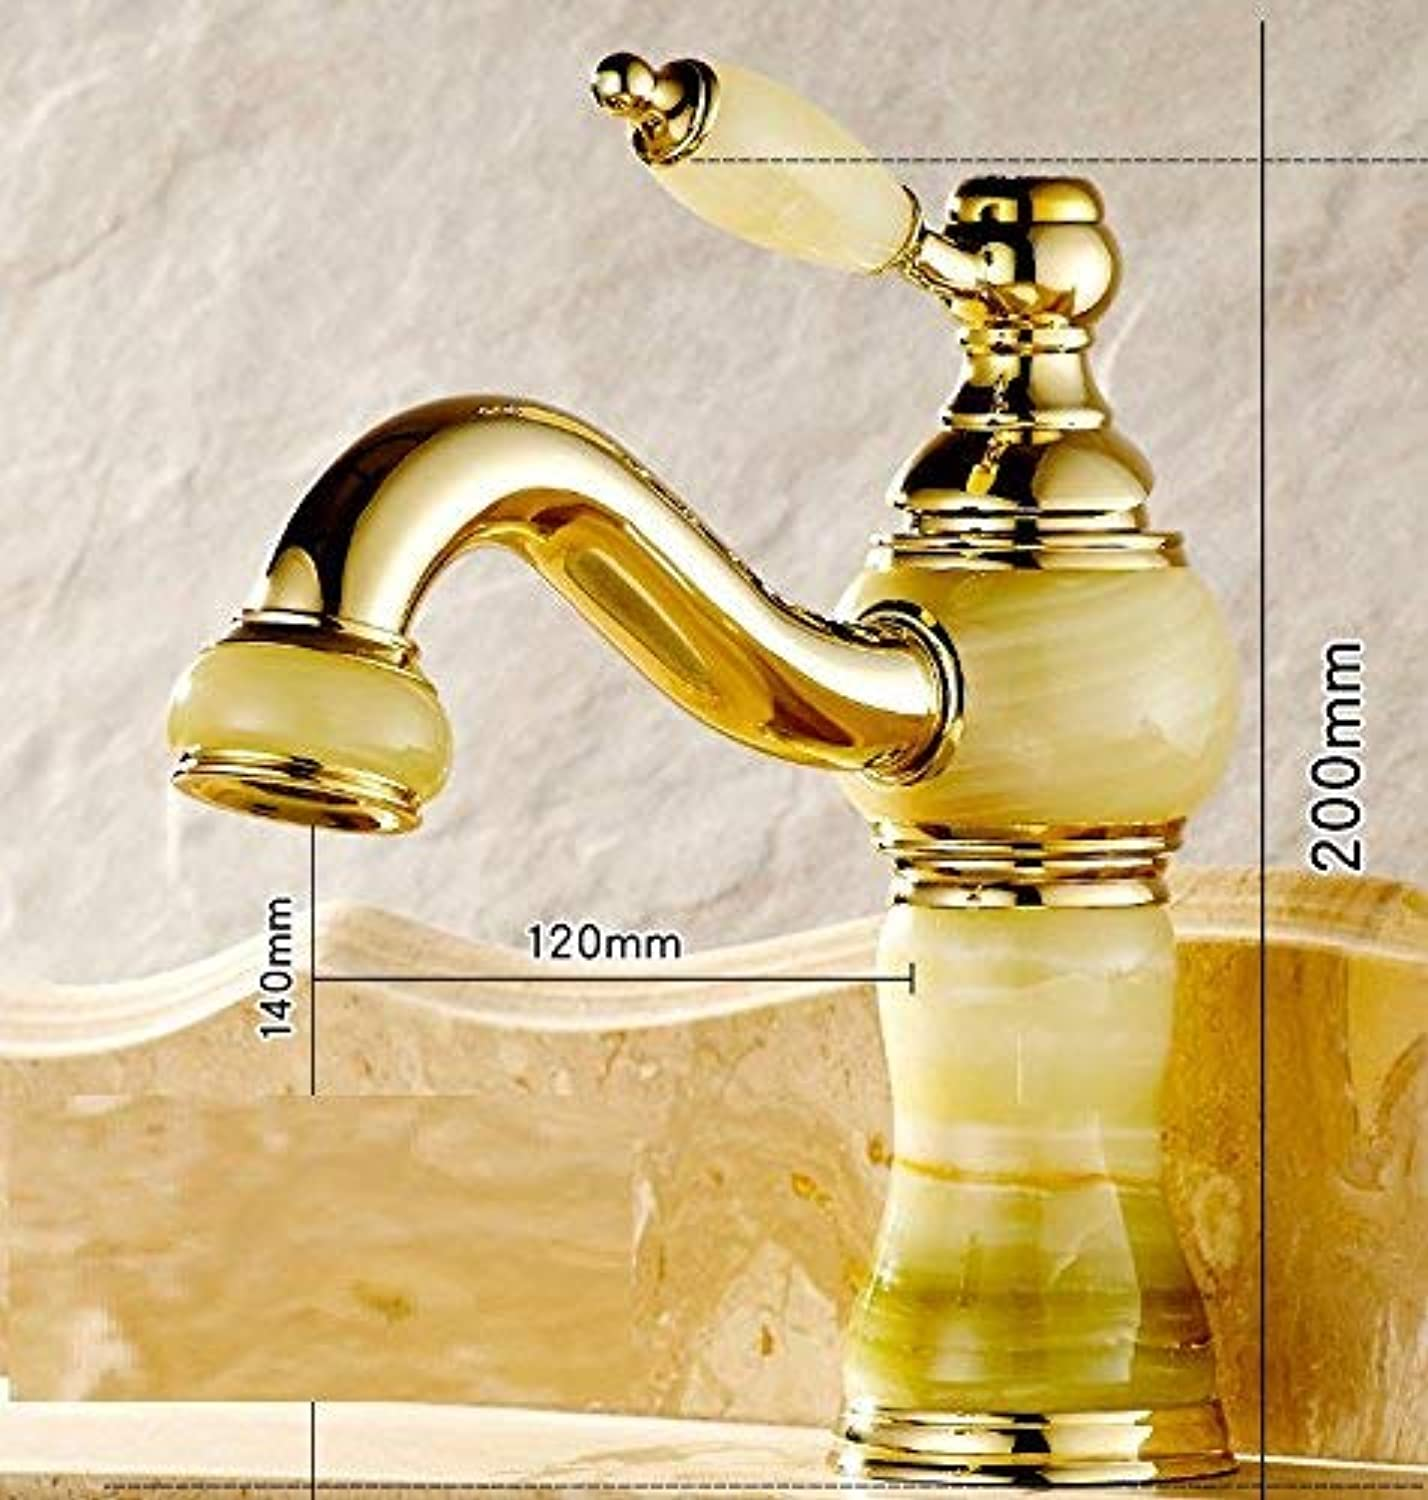 Oudan Copper is a European-style retro-style sink gold and jade hot and cold water tap